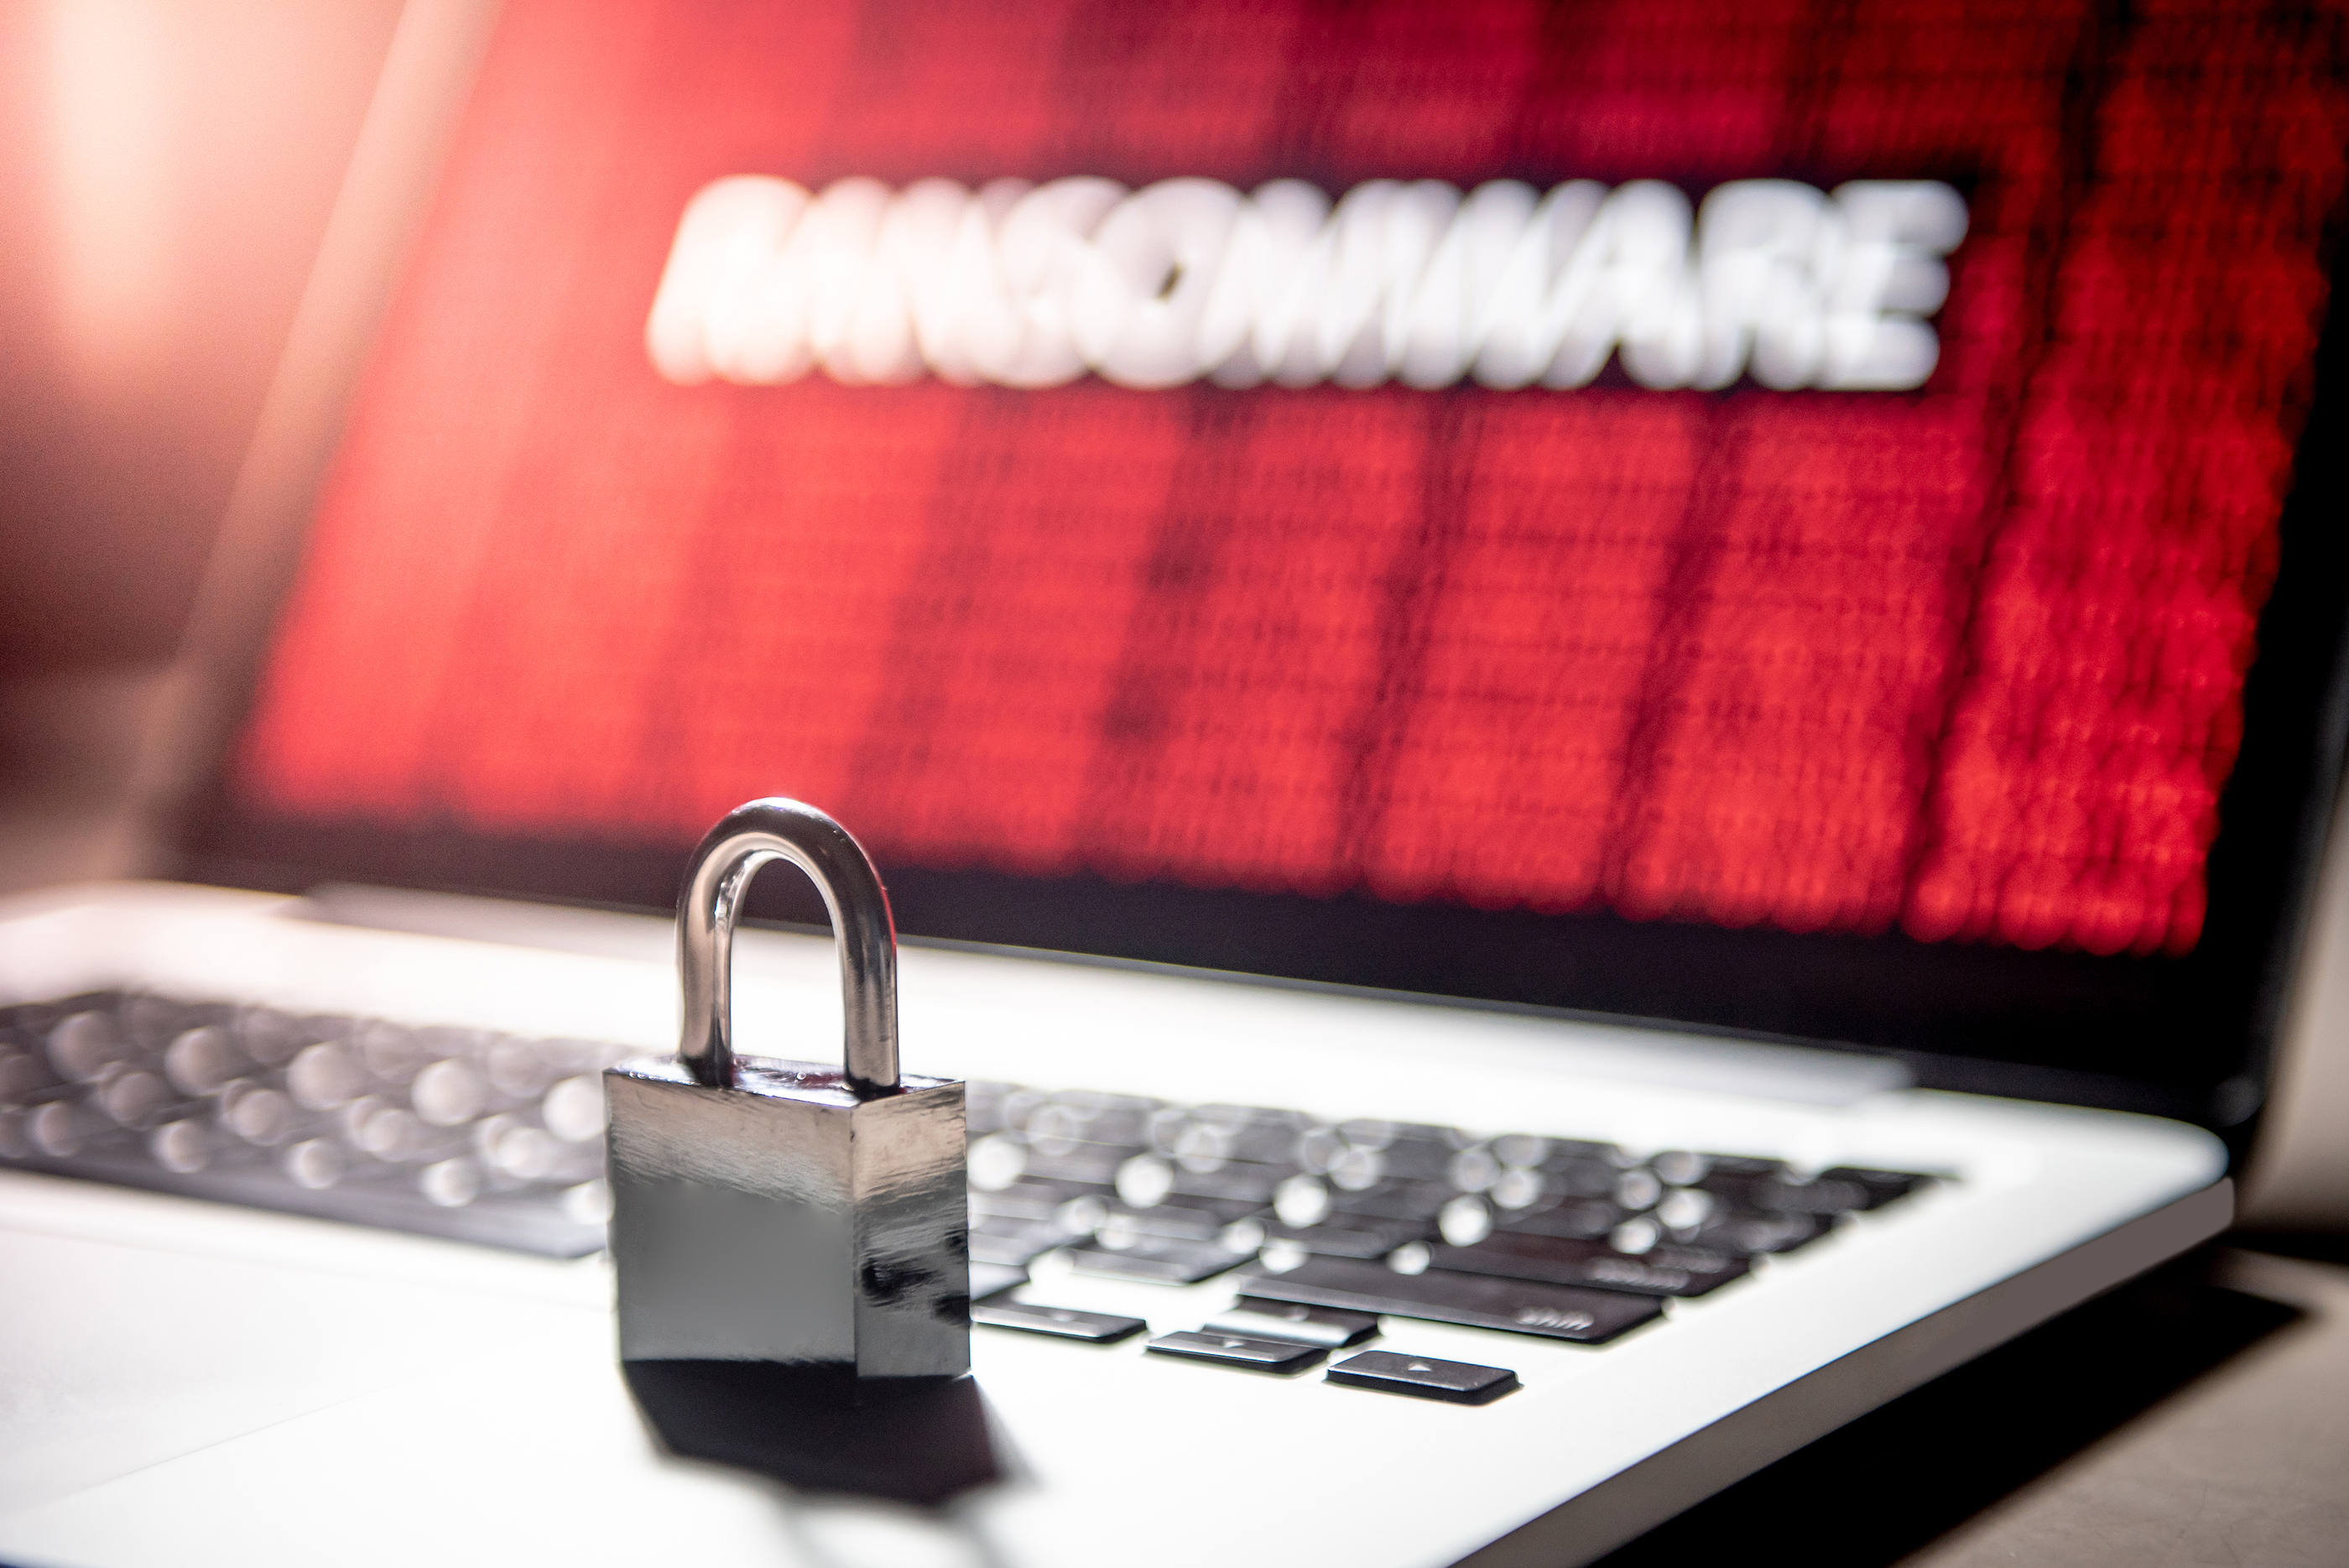 Ransomware Attacks Have Doubled in 2019. 5 Ways to Avoid Becoming a Victim